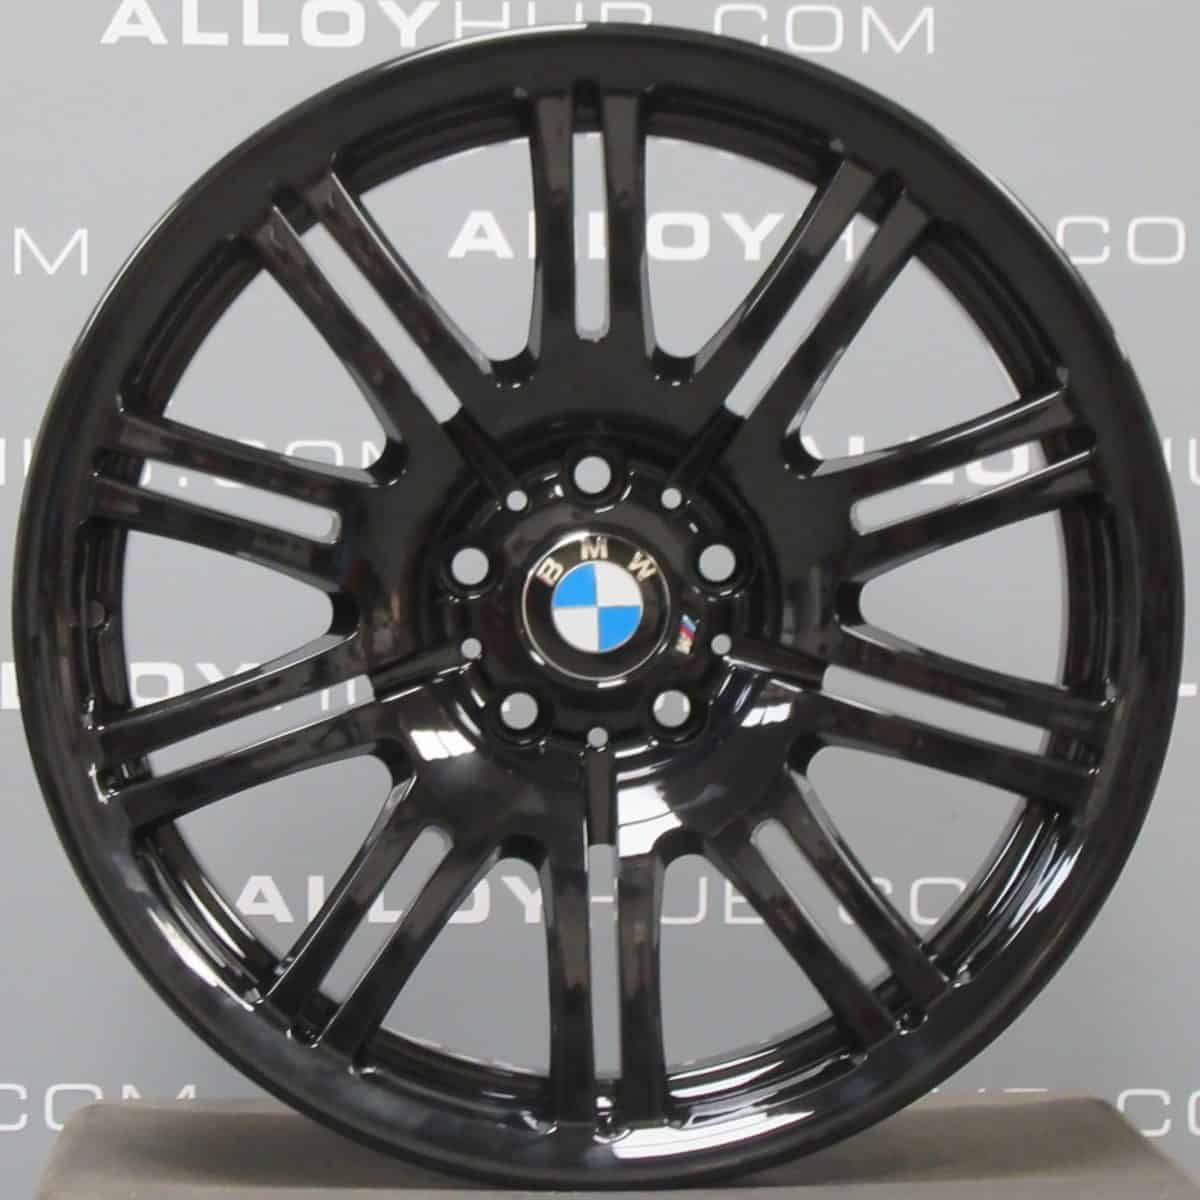 """Genuine BMW M3 E46 Style 67M Sport 10 Double Spoke 19"""" inch Alloy Wheels with Gloss Black Finish 36112229650 36112229660"""